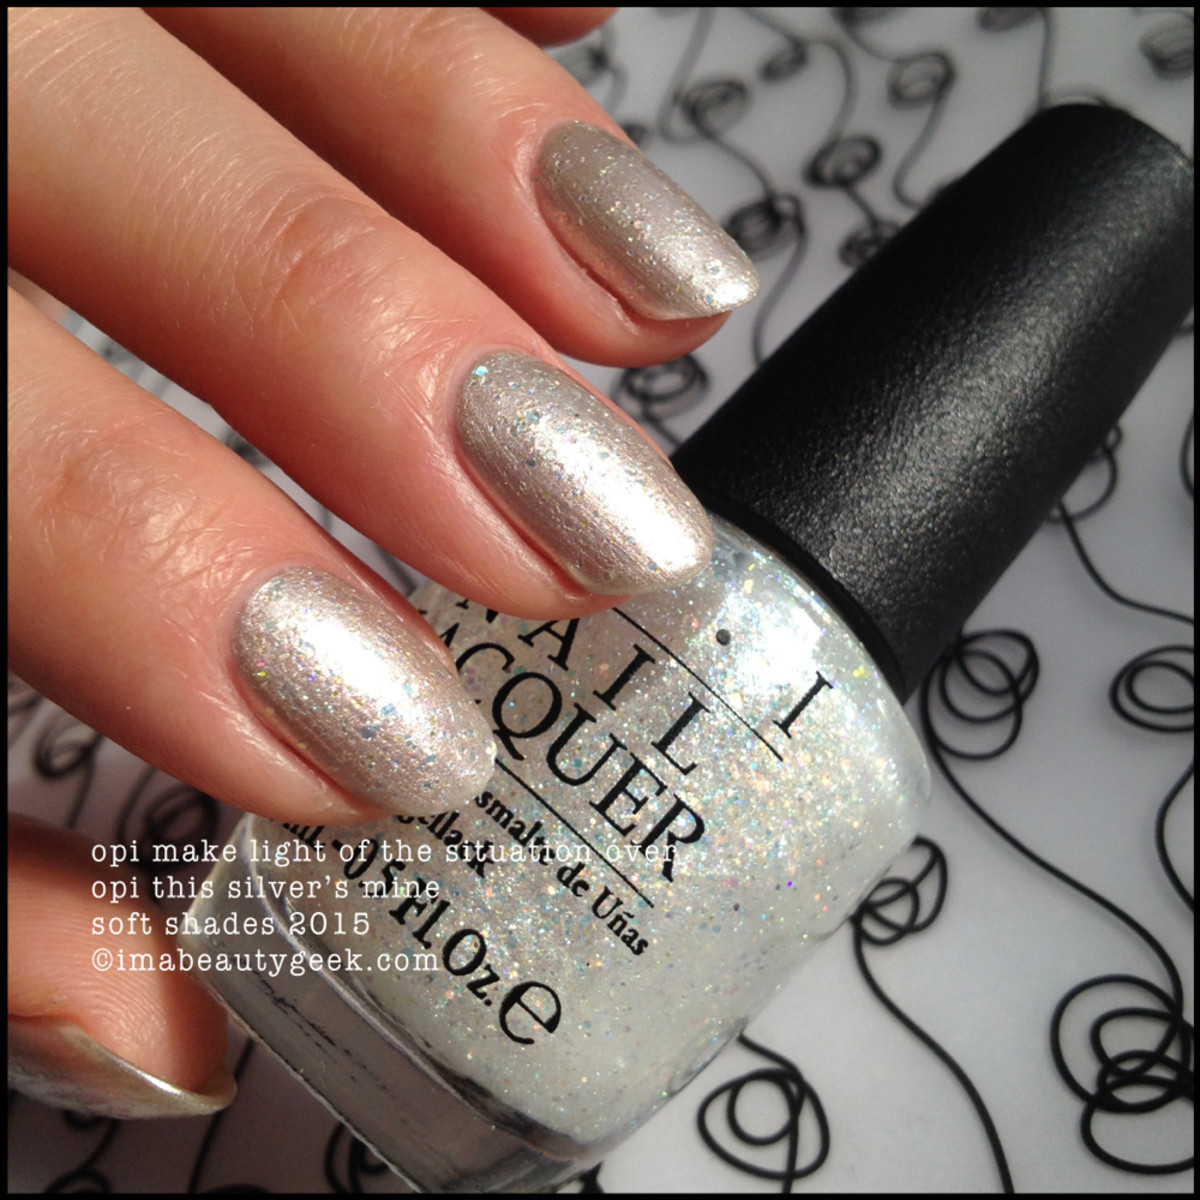 OPI Soft Shades 2015 Make Light of the Situation over This Silvers